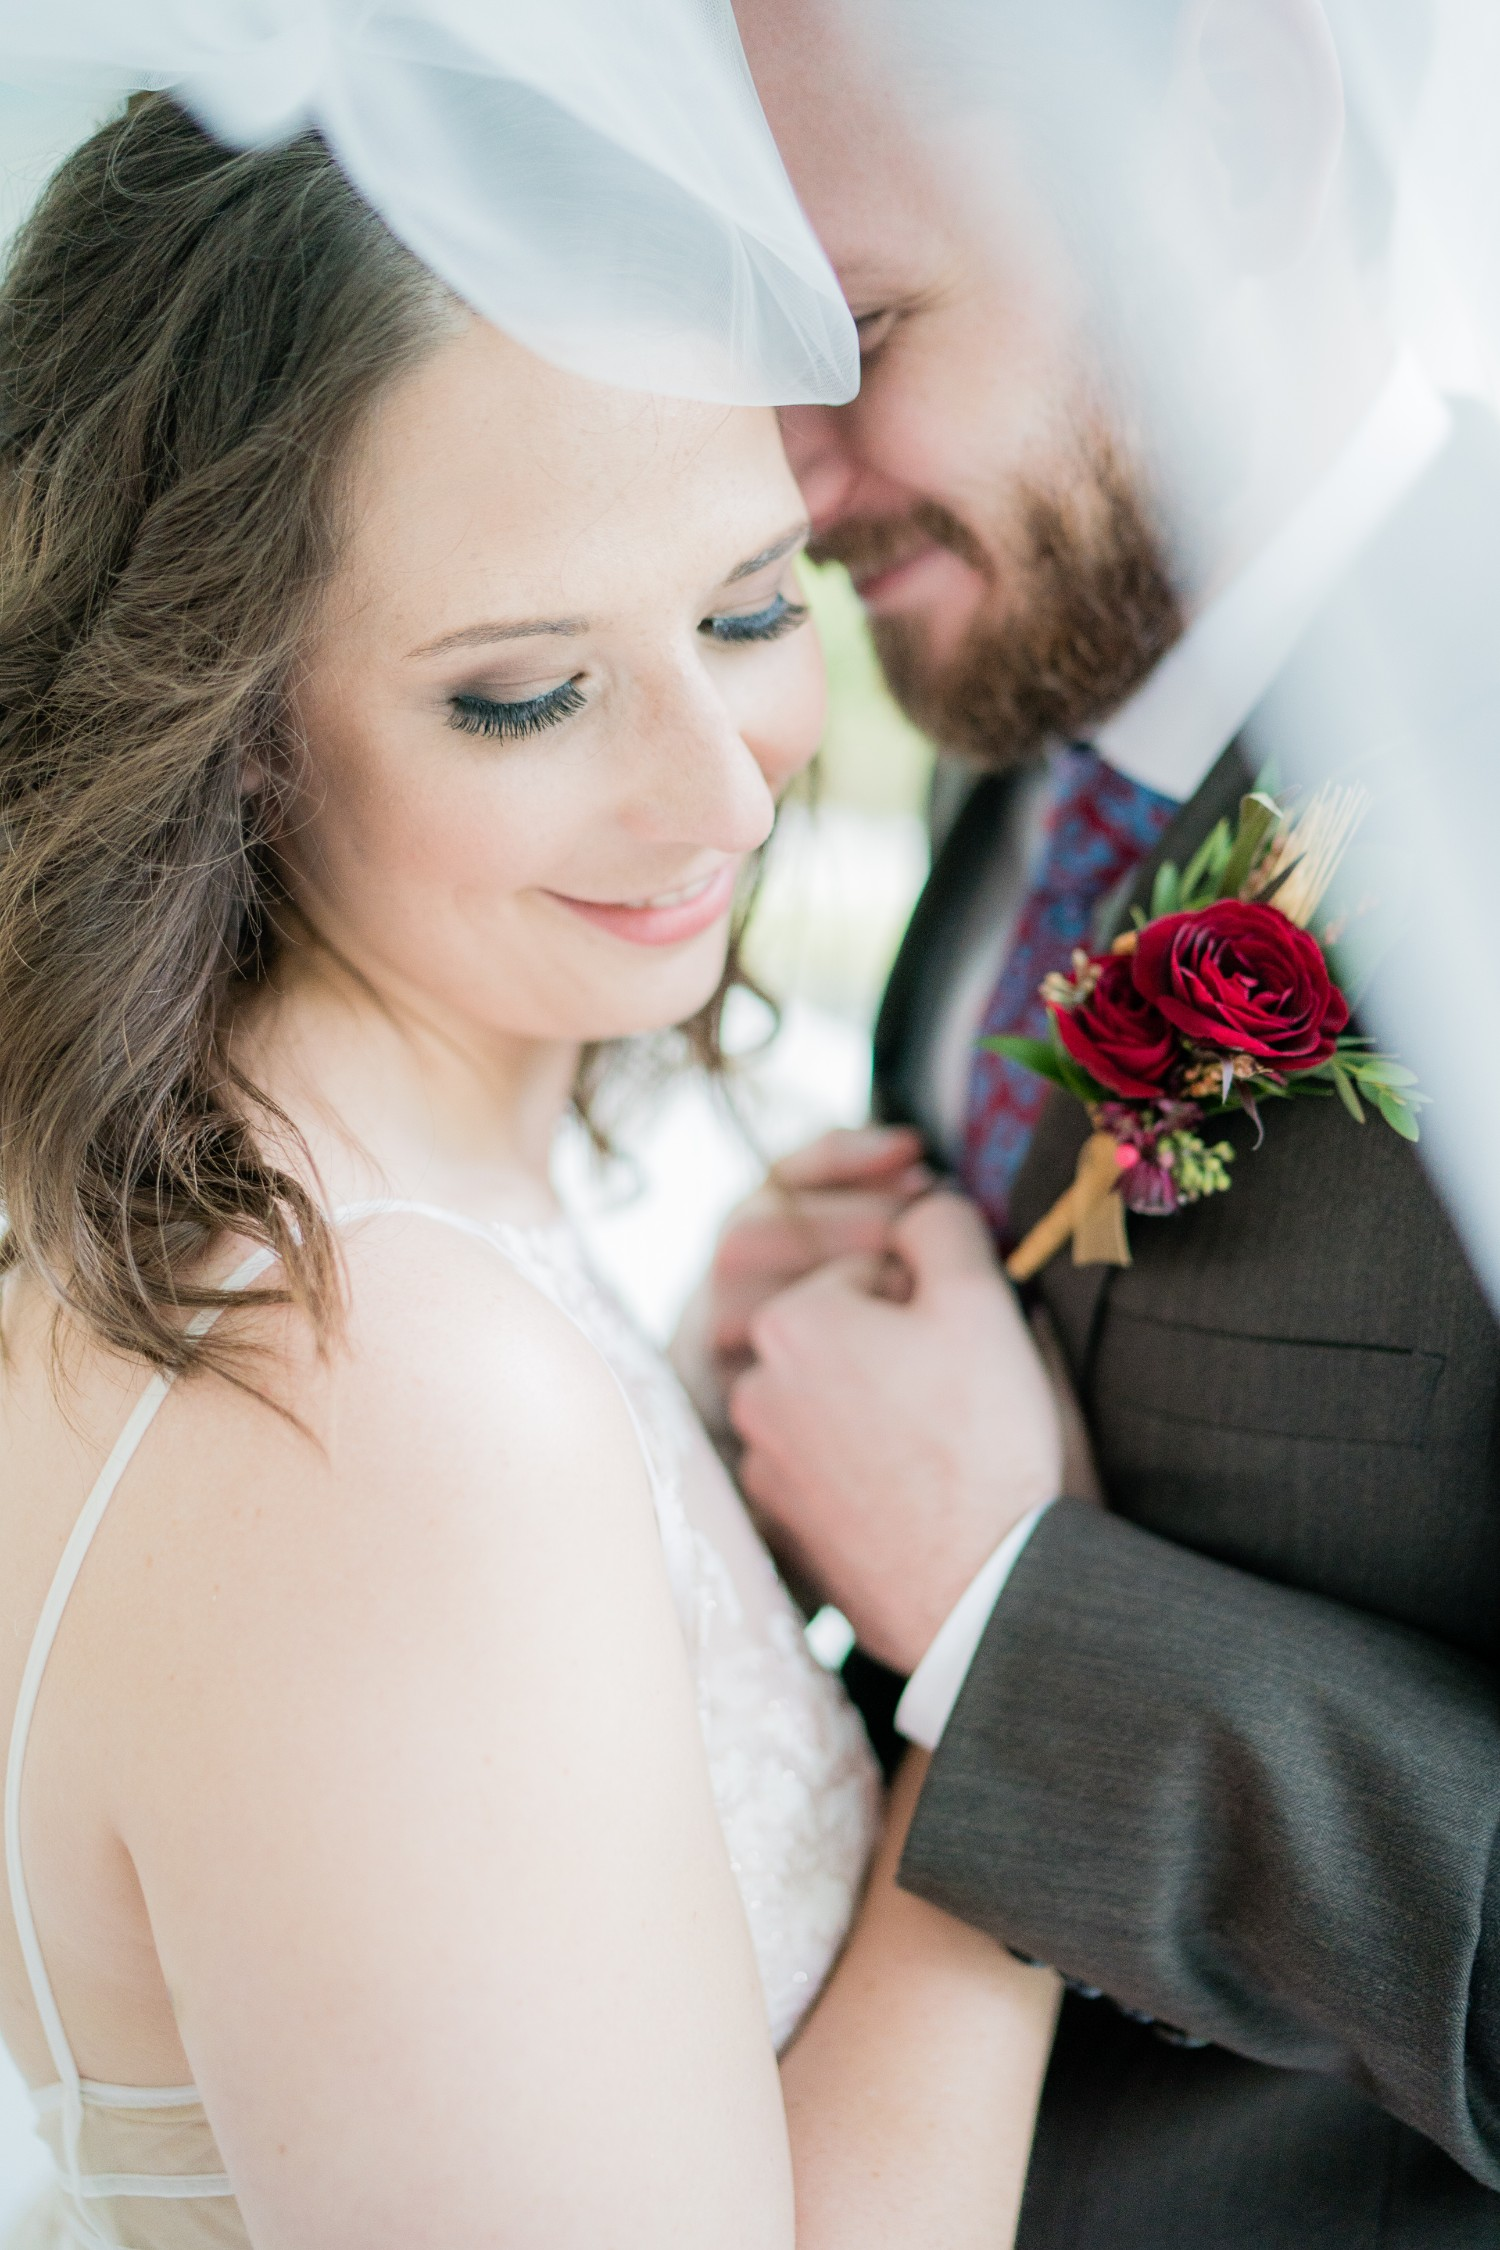 Fall Wedding at Pratt Place Organic Boutonniere, Rose of Sharon Floral Designs, Fayetteville, AR